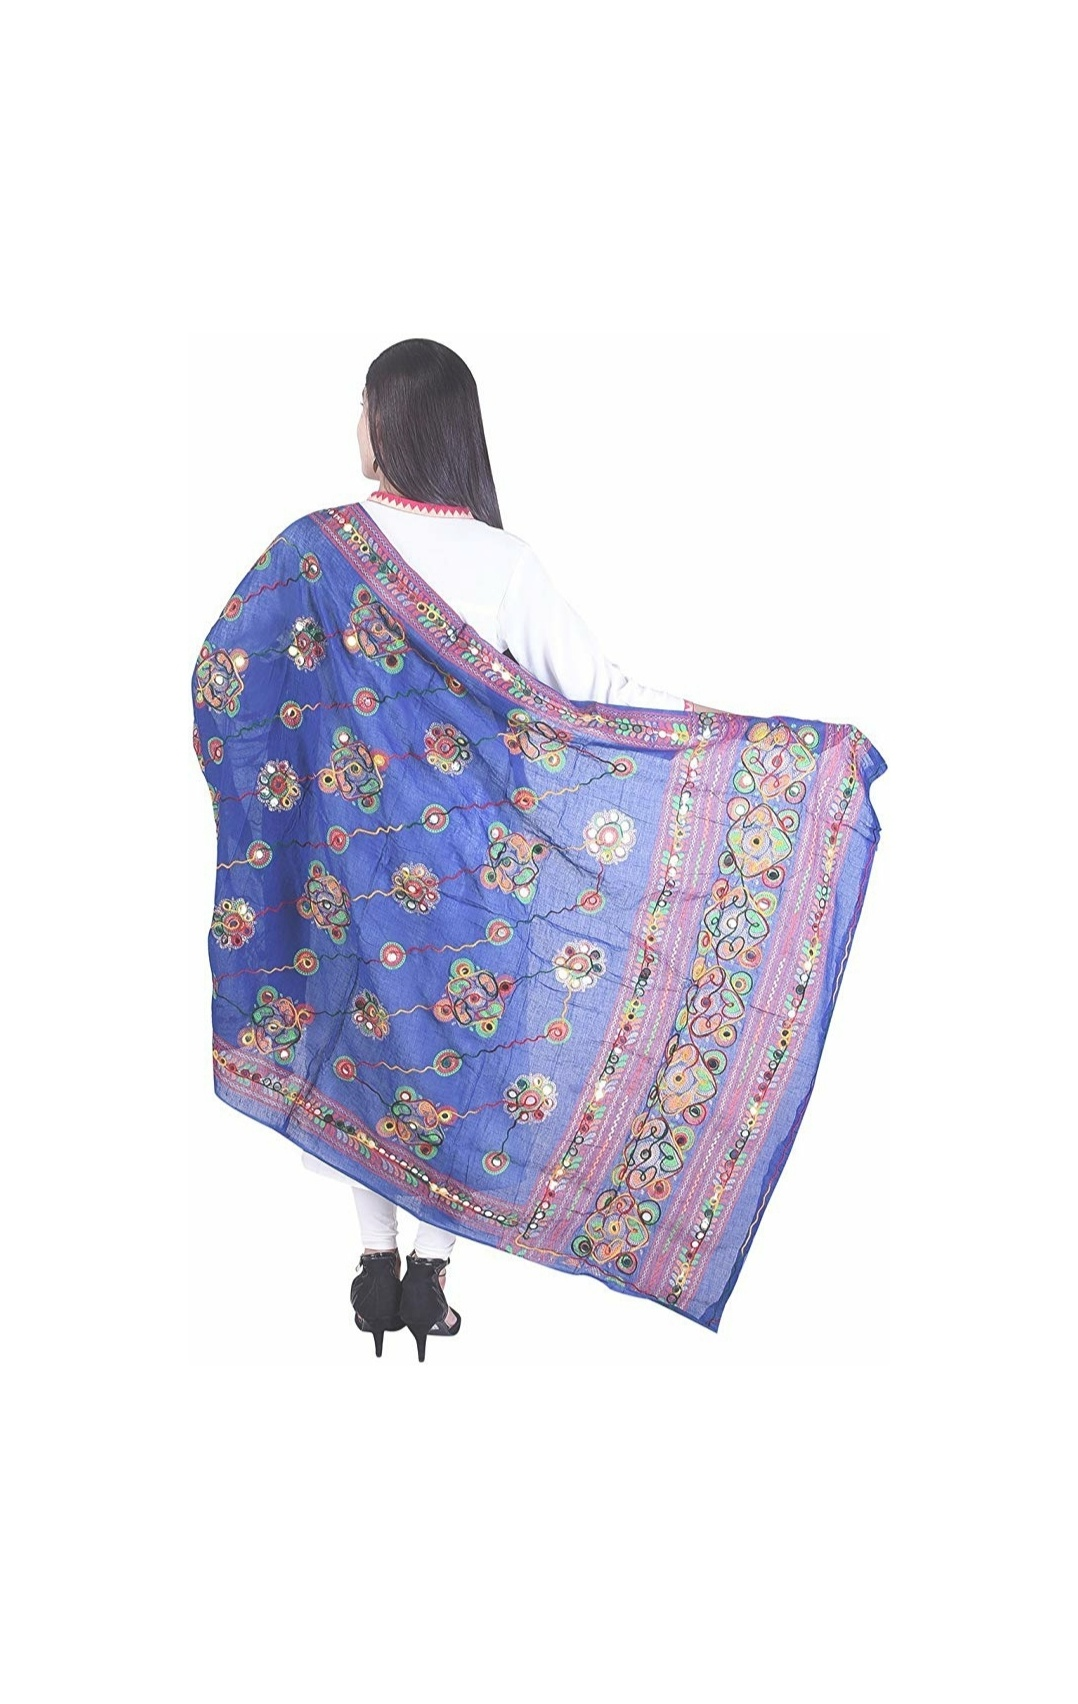 Samridhi Collections Women's Cotton Banjara Embroidered Kutchi Dupatta Chakachak Handicraft Dupatta (Blue)